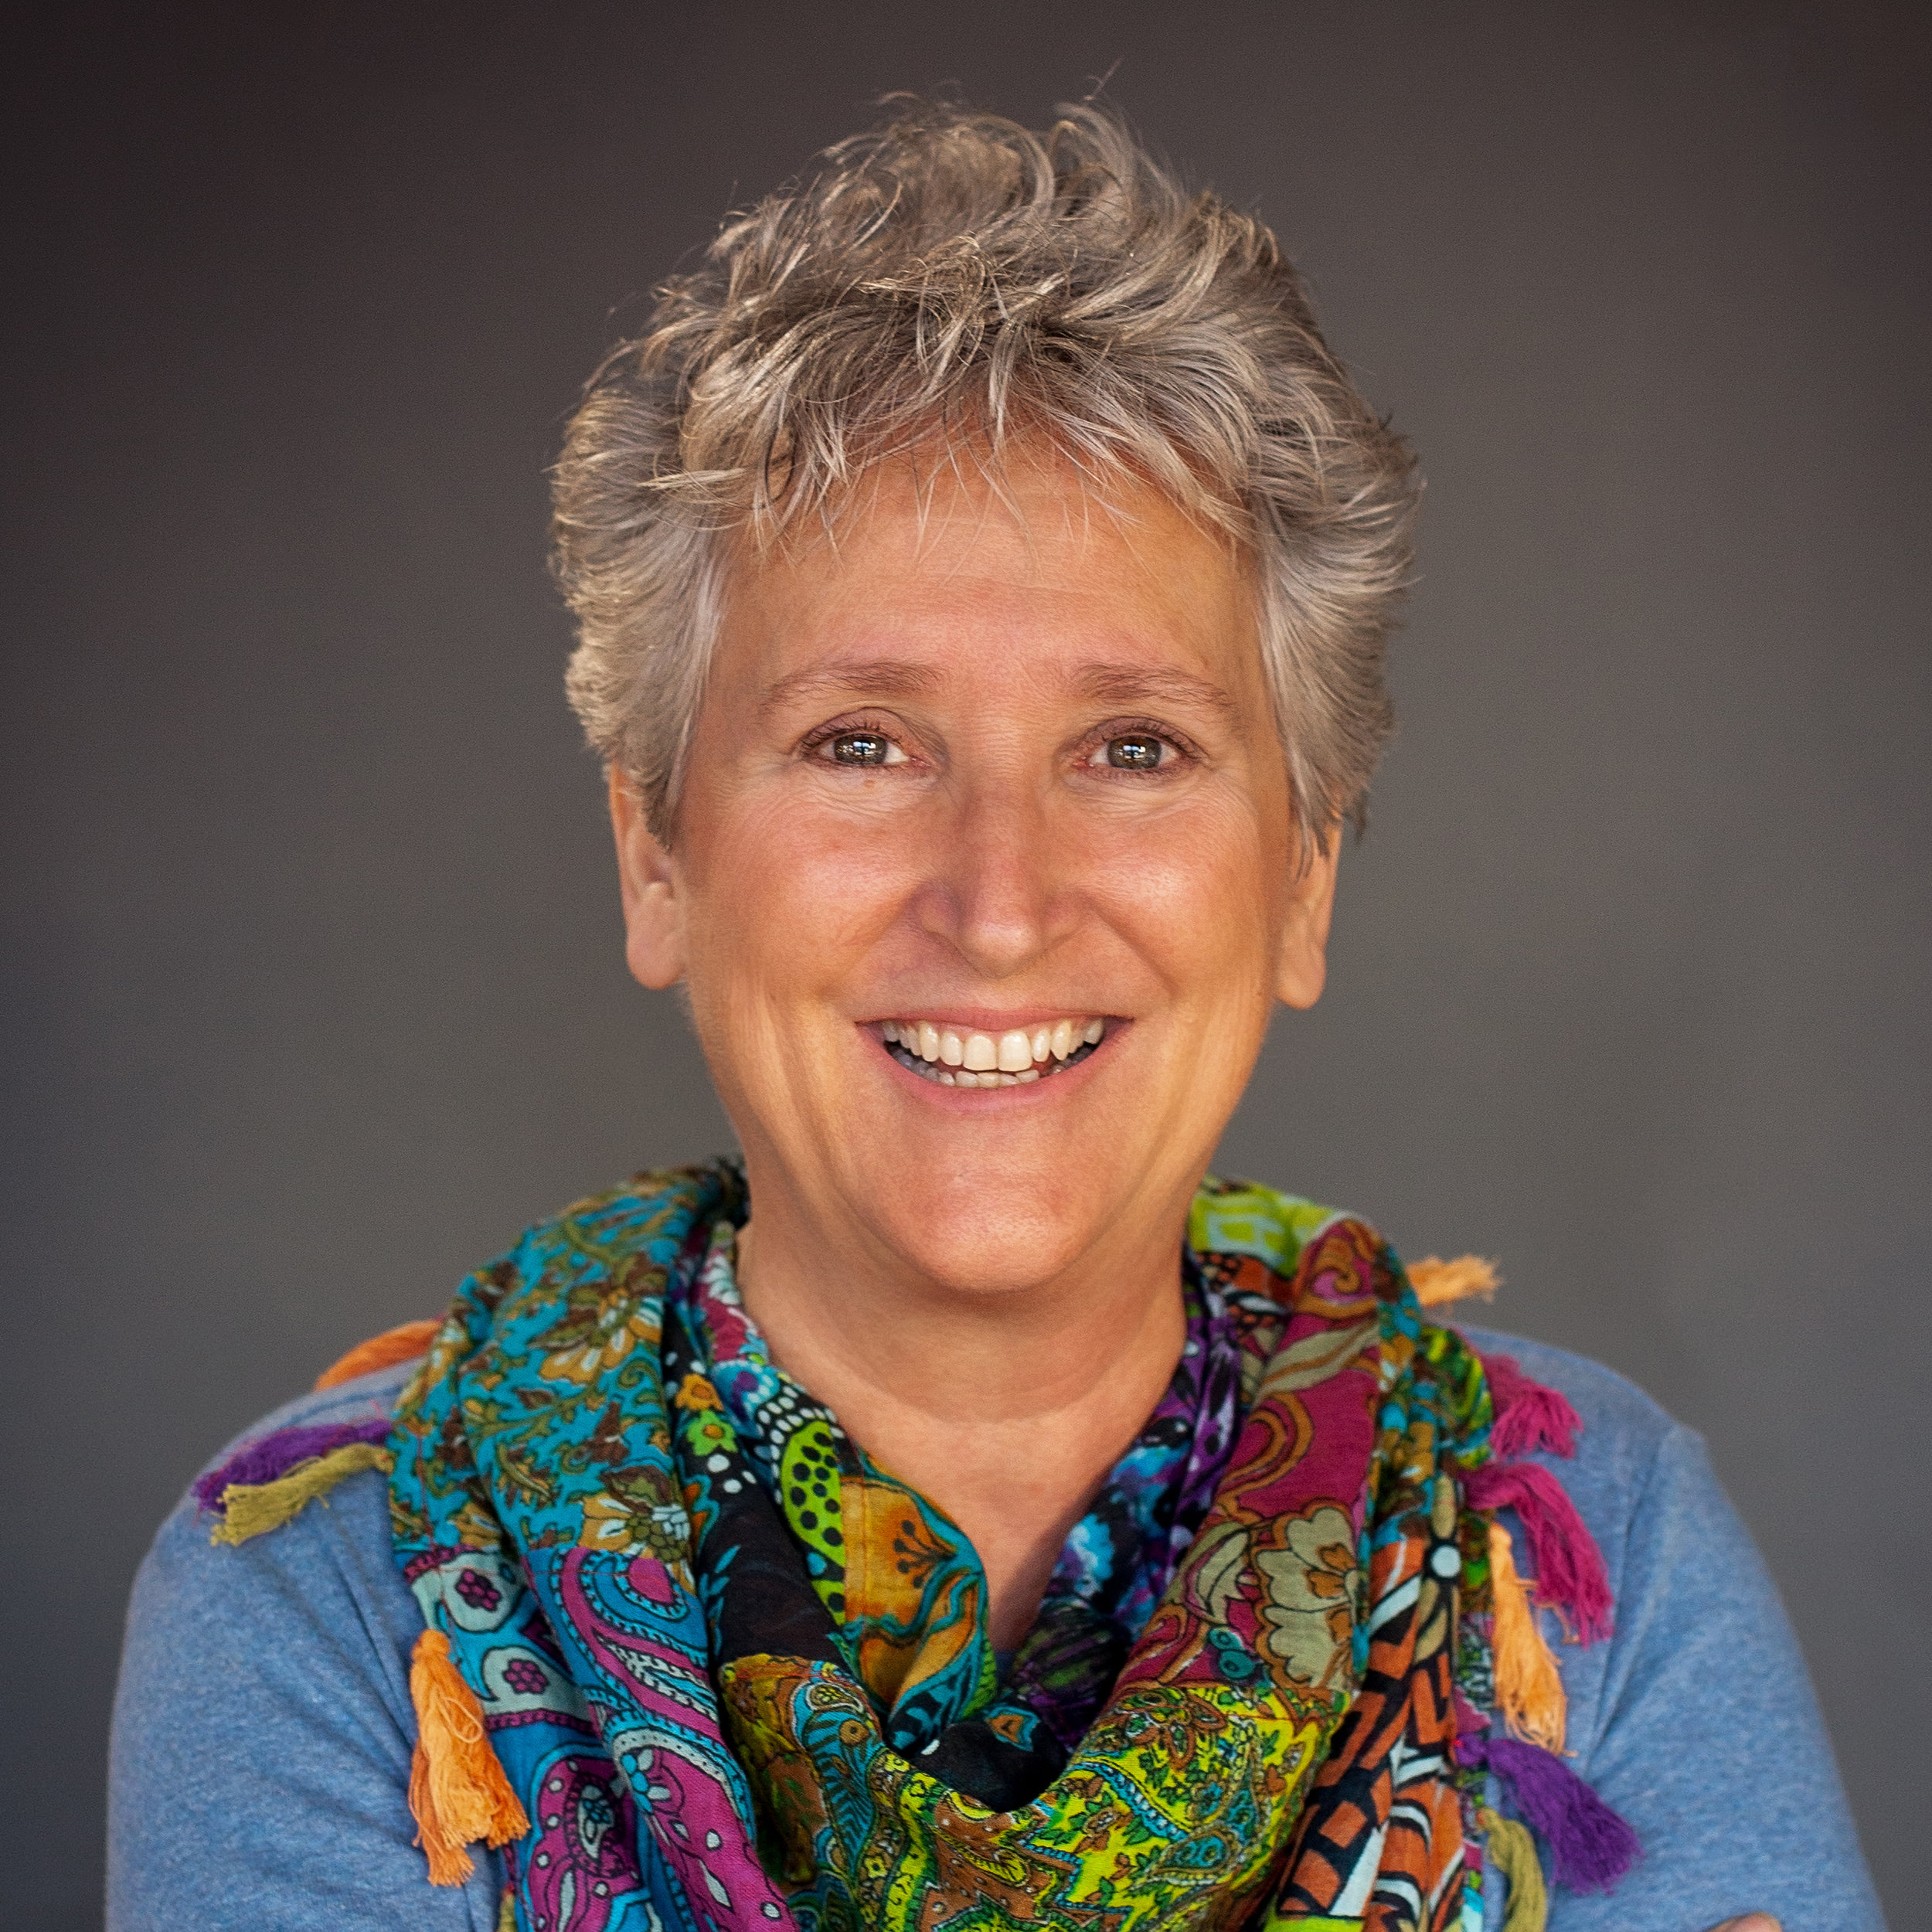 Mary Thompson CAS - Ayurvedic Practitioner, Teacher and MentorMary Thompson supports the continued spread of Ayurveda by supporting other practitioners and students.